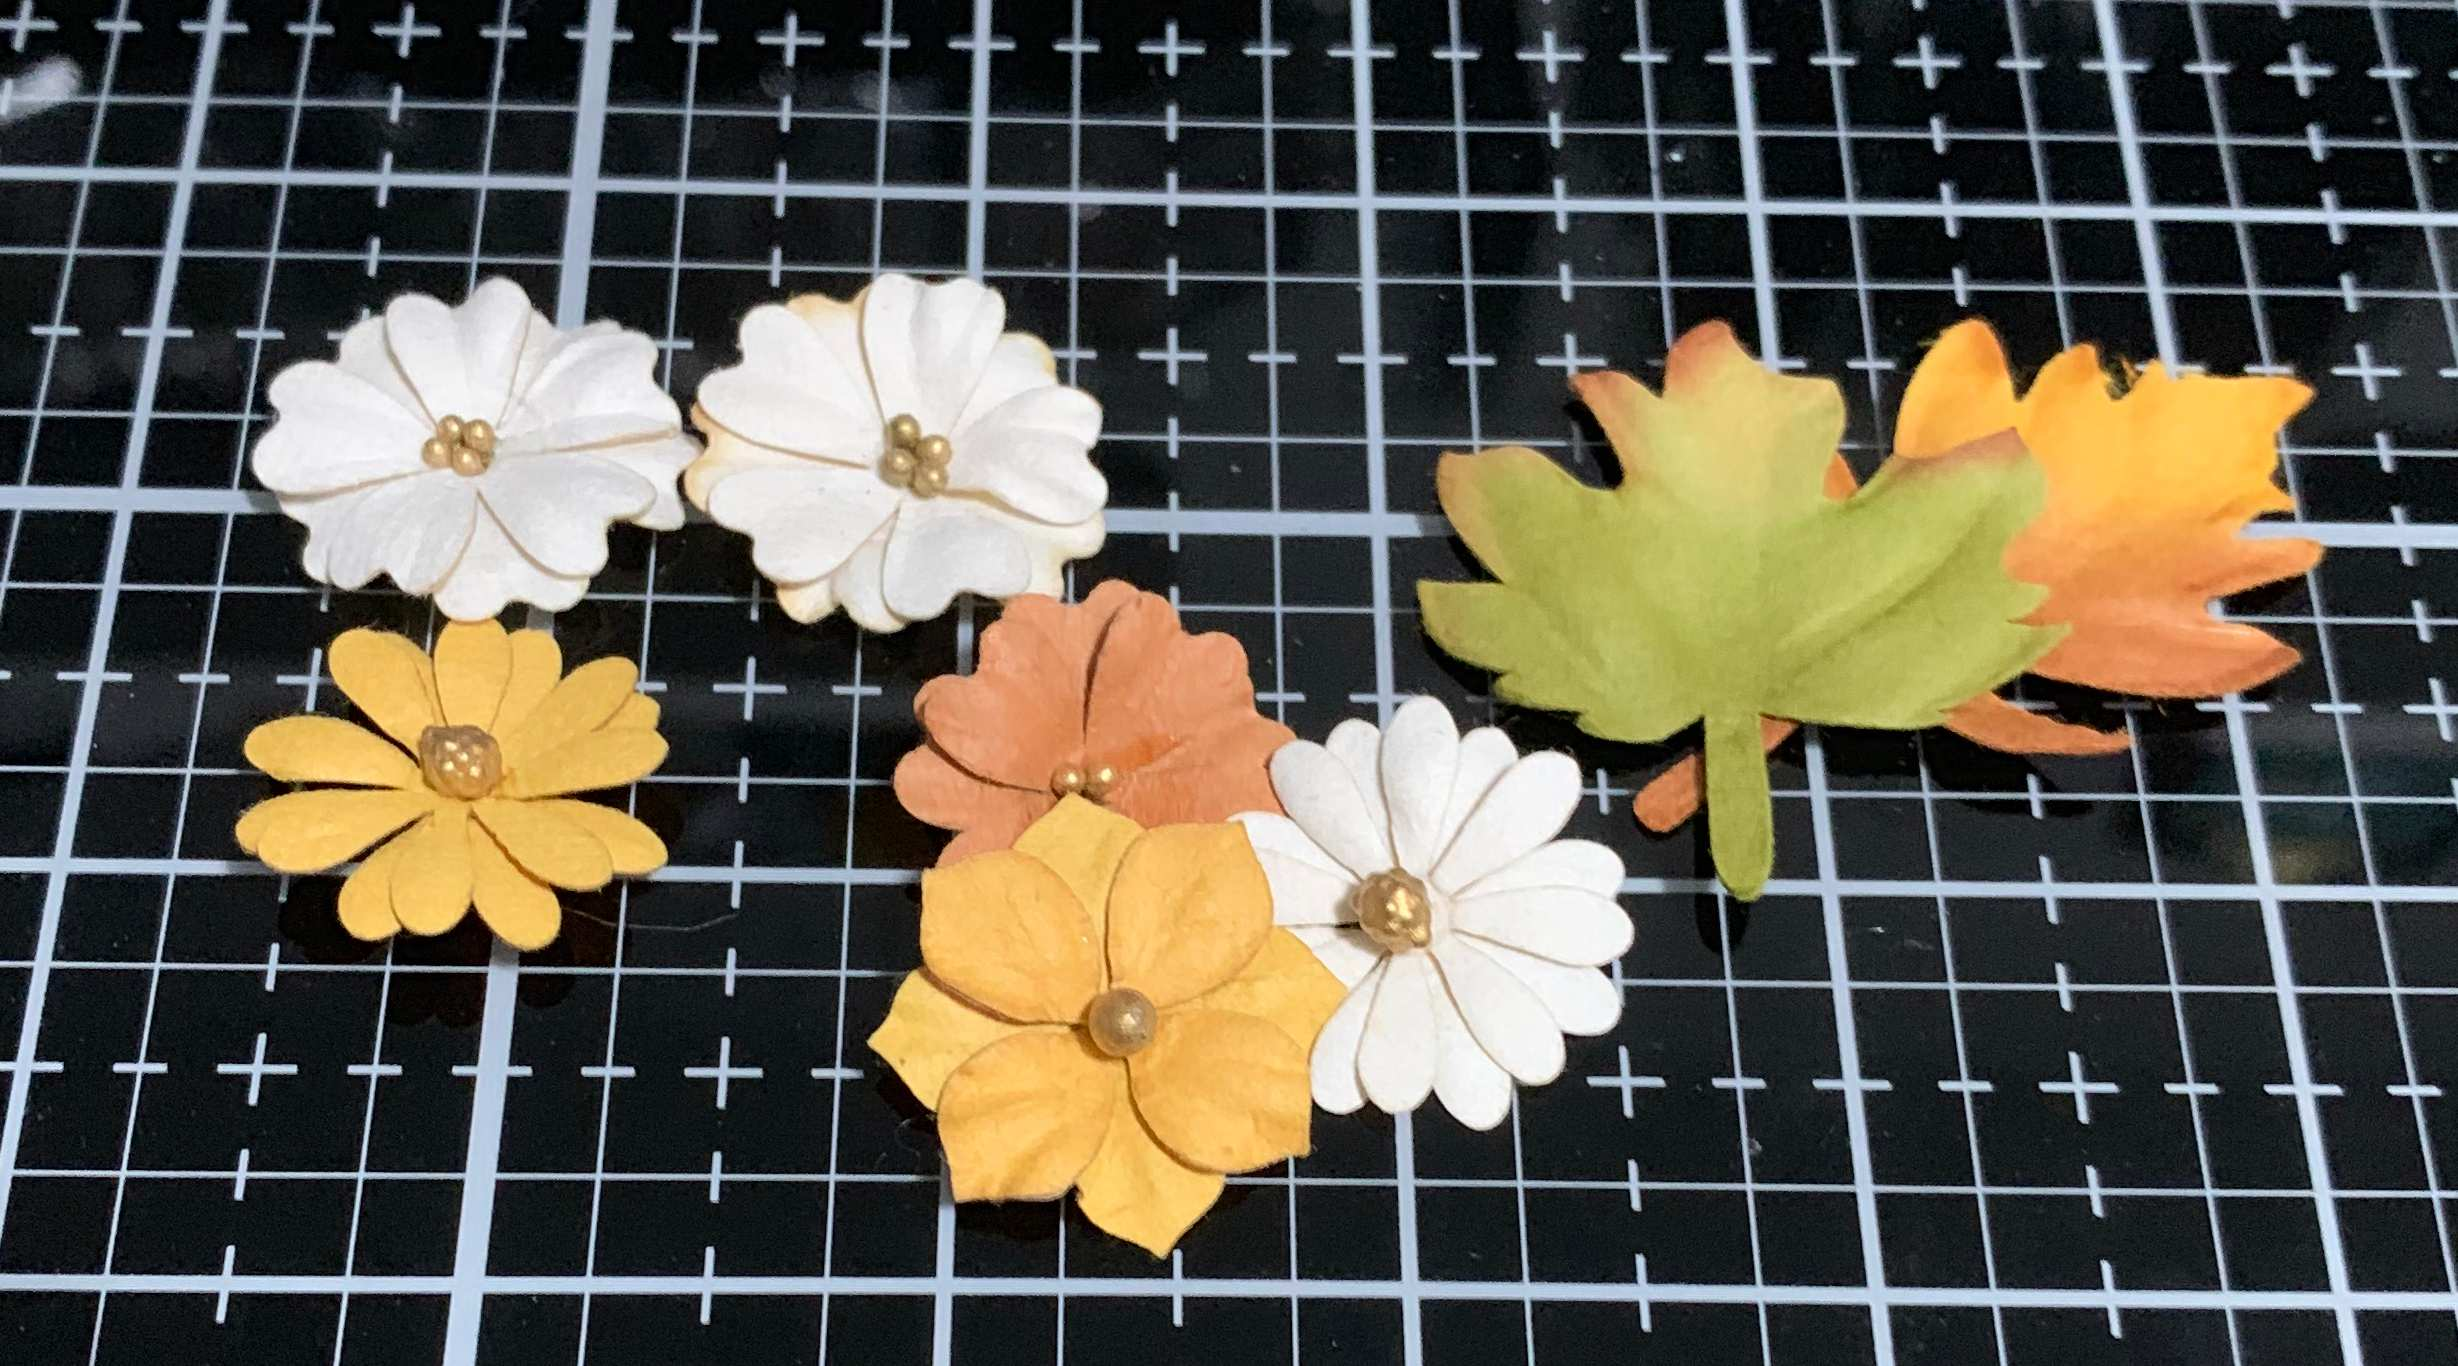 Flowers and leaves from the Prima Marketing Autumn Sunset Collection